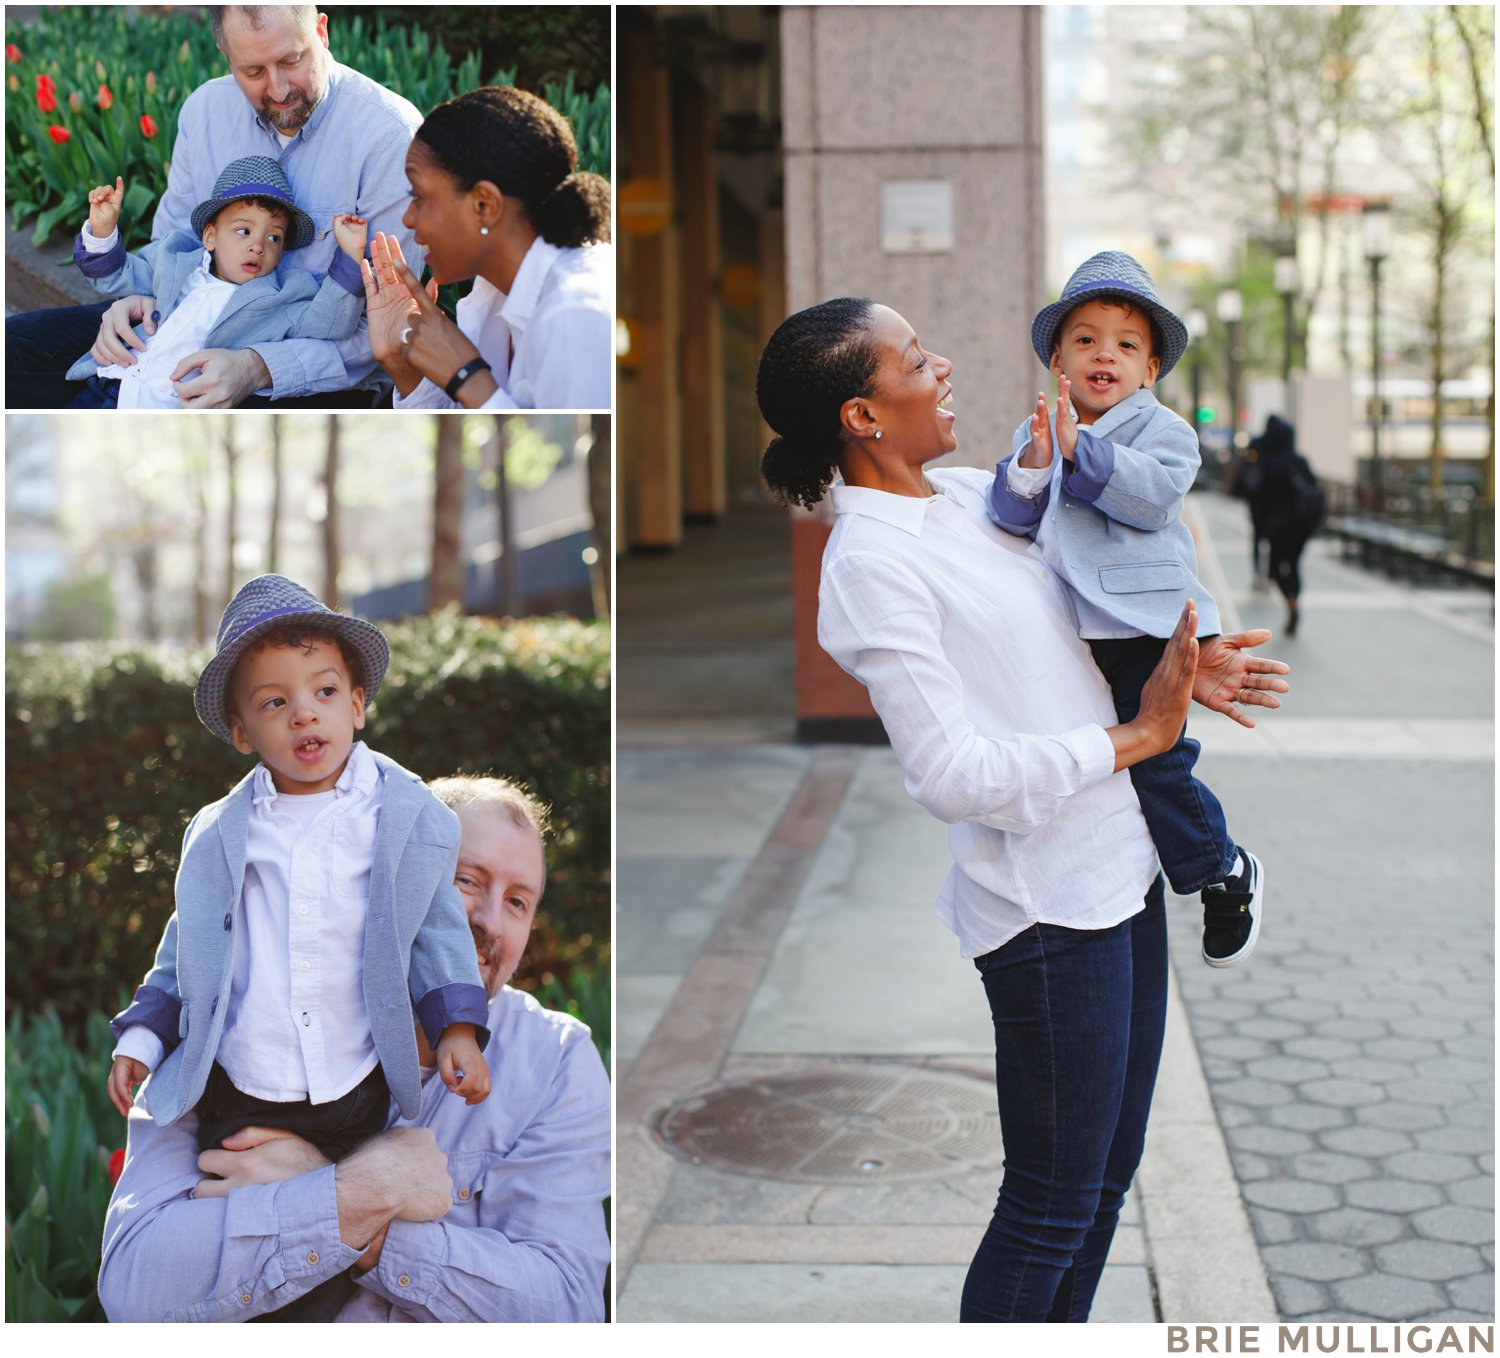 Brie-Mulligan-Family-Photographer-Brooklyn-NYC-NJ_0274.jpg